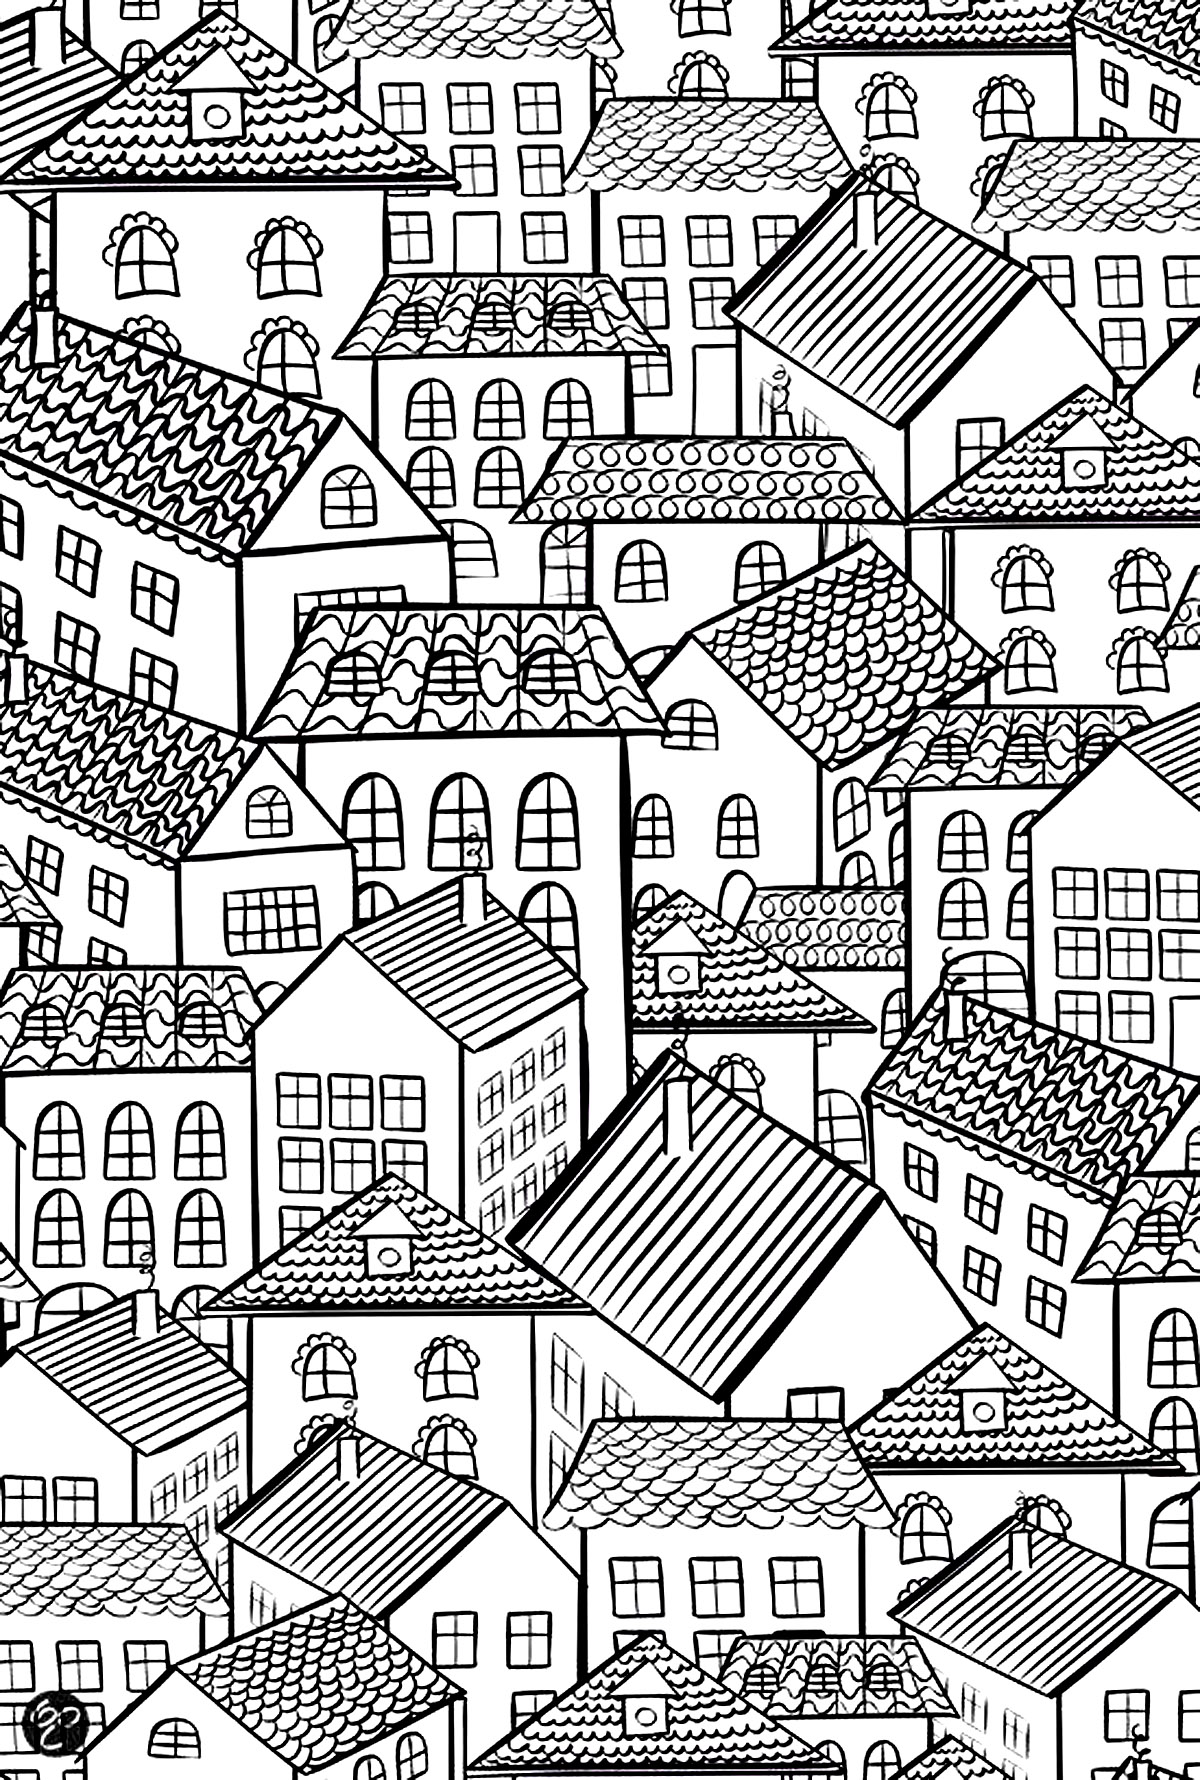 coloring pages house architecture village roofs architecture adult coloring pages coloring pages house